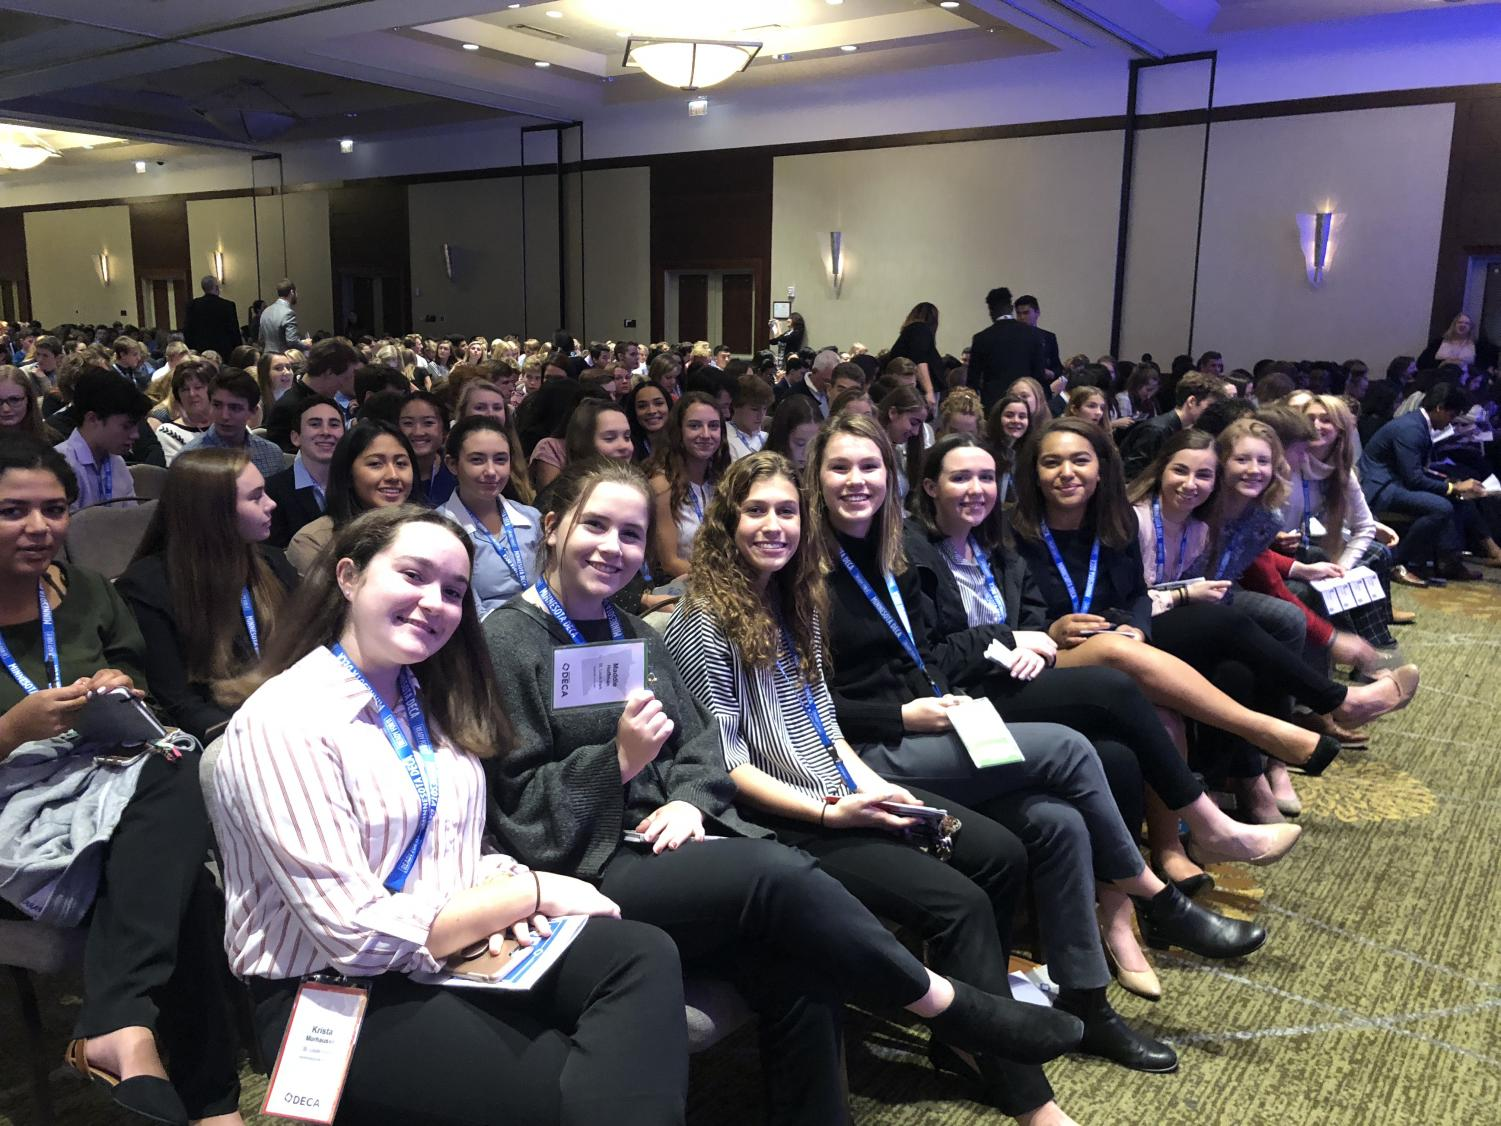 DECA attended the fall leadership conference at the Hyatt Regency in downtown Minneapolis.